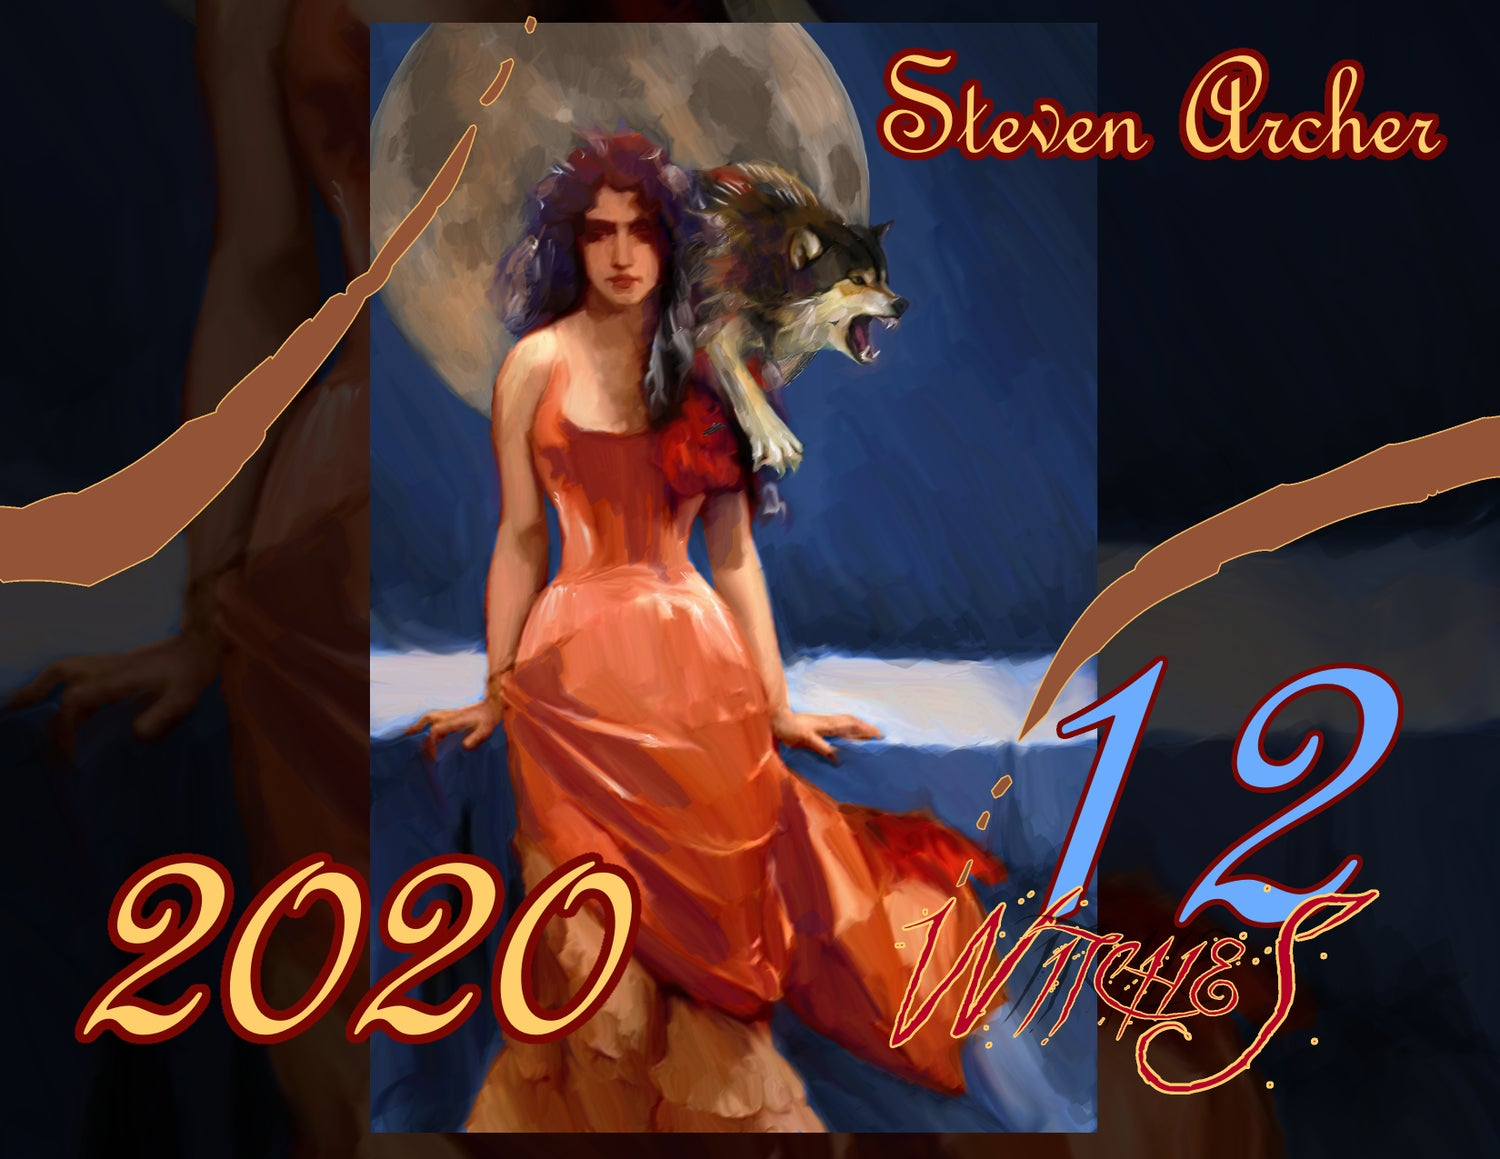 Witches 2020 calendar pre-order